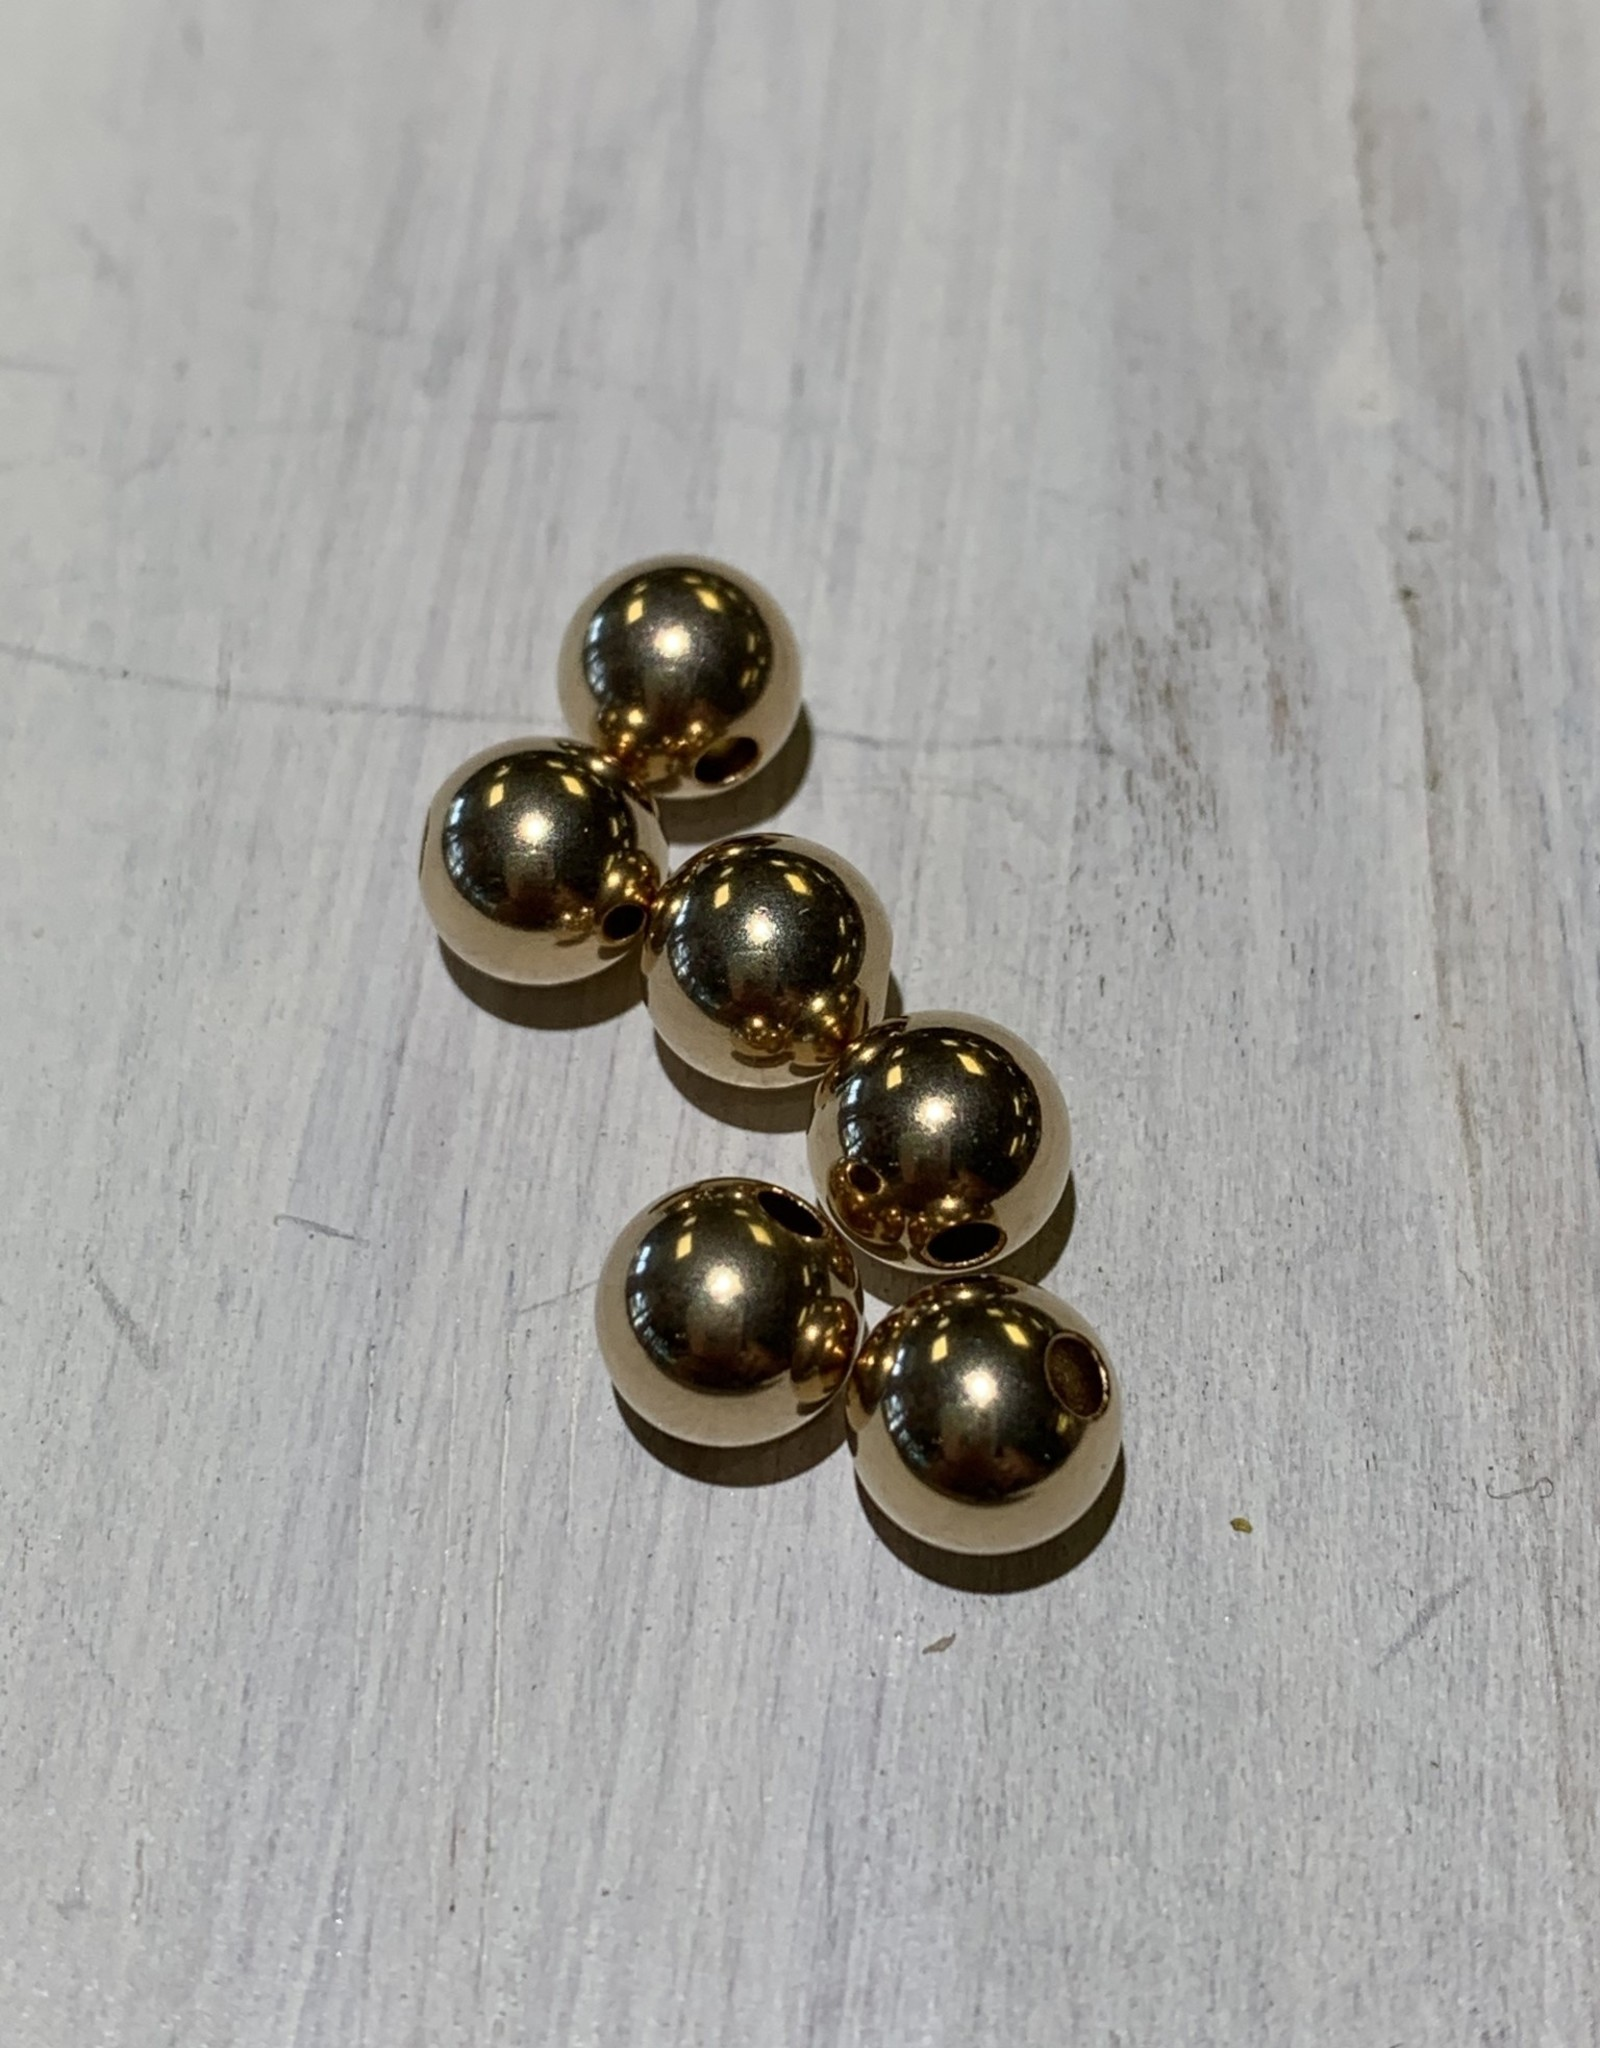 6mm Rounds 14k Gold Filled Qty 5